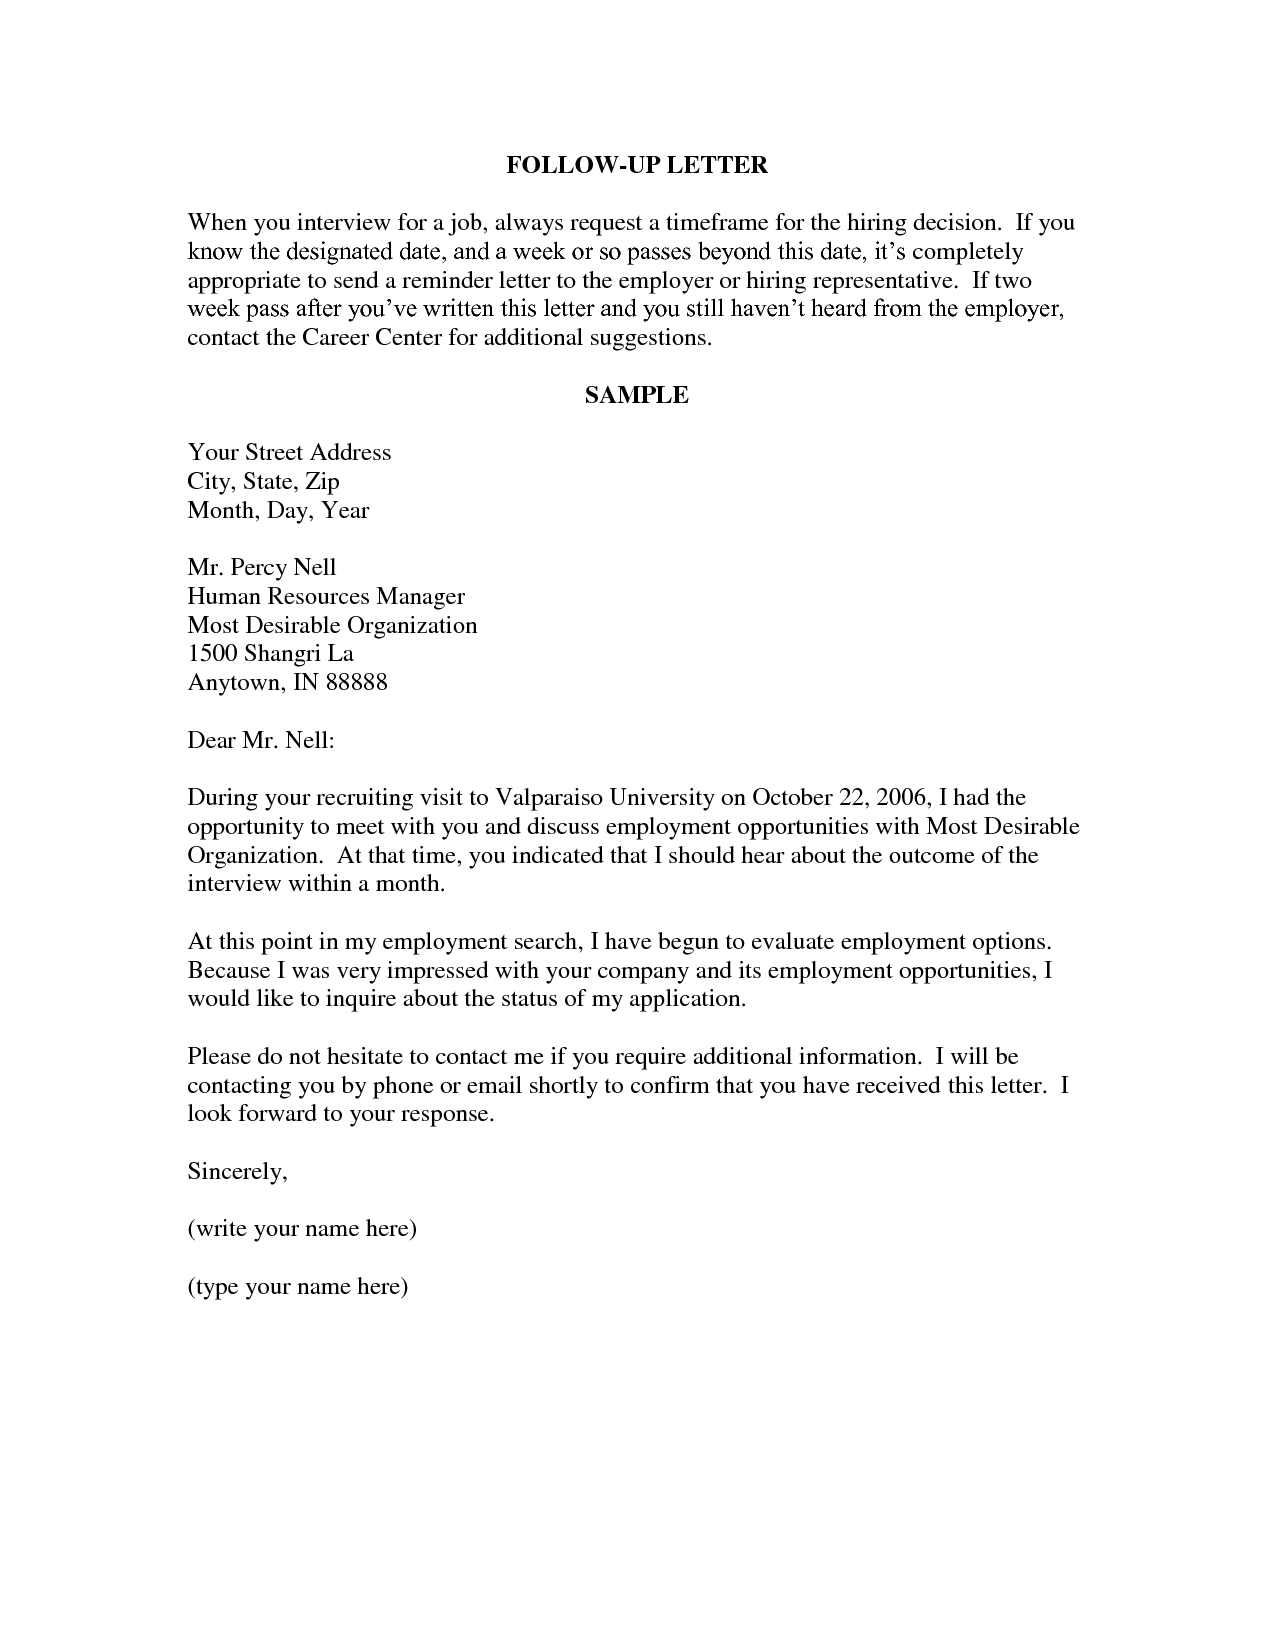 Employment Follow Up Letter